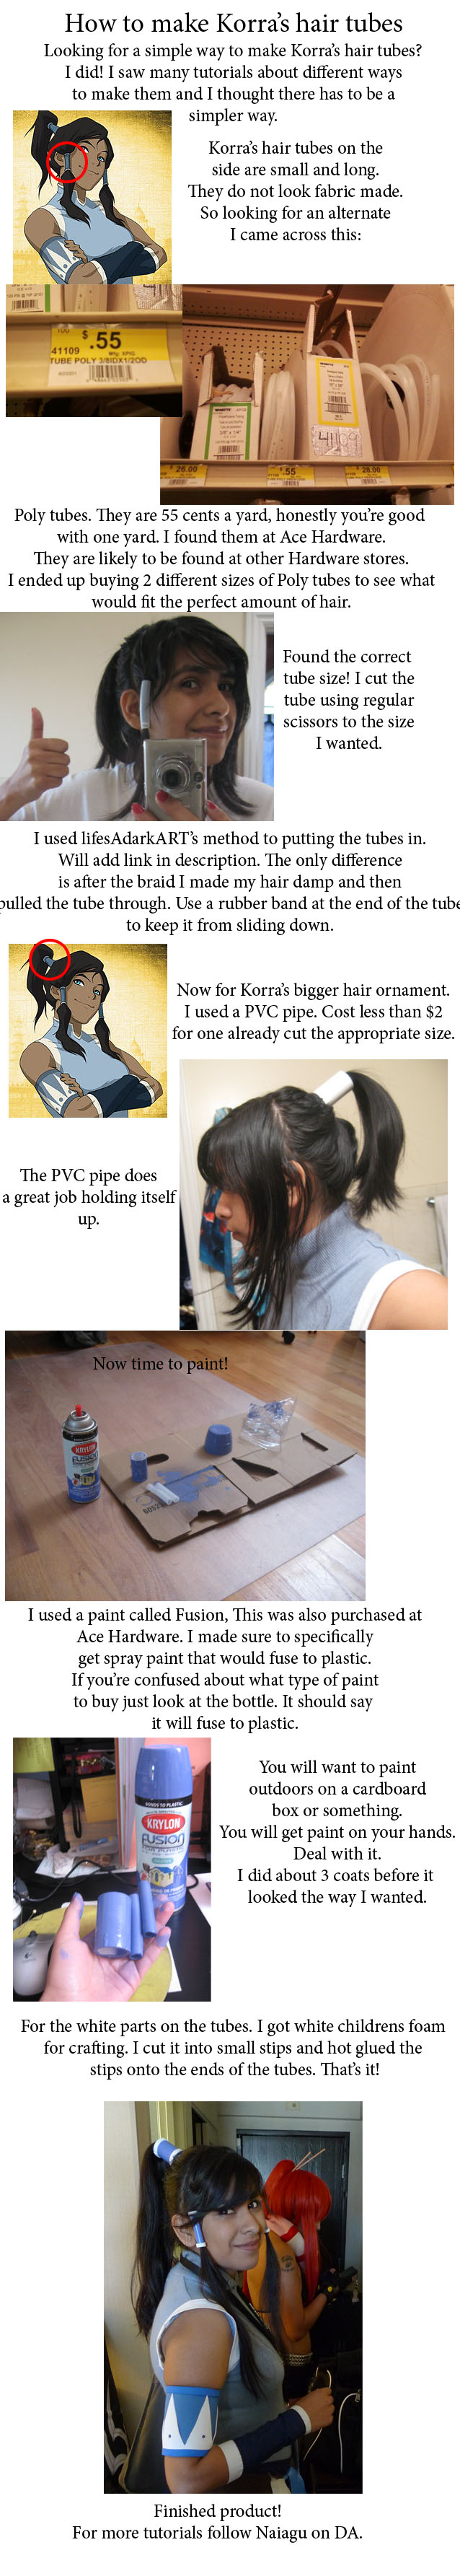 Korra Hair tube tutorial. by Naiagu